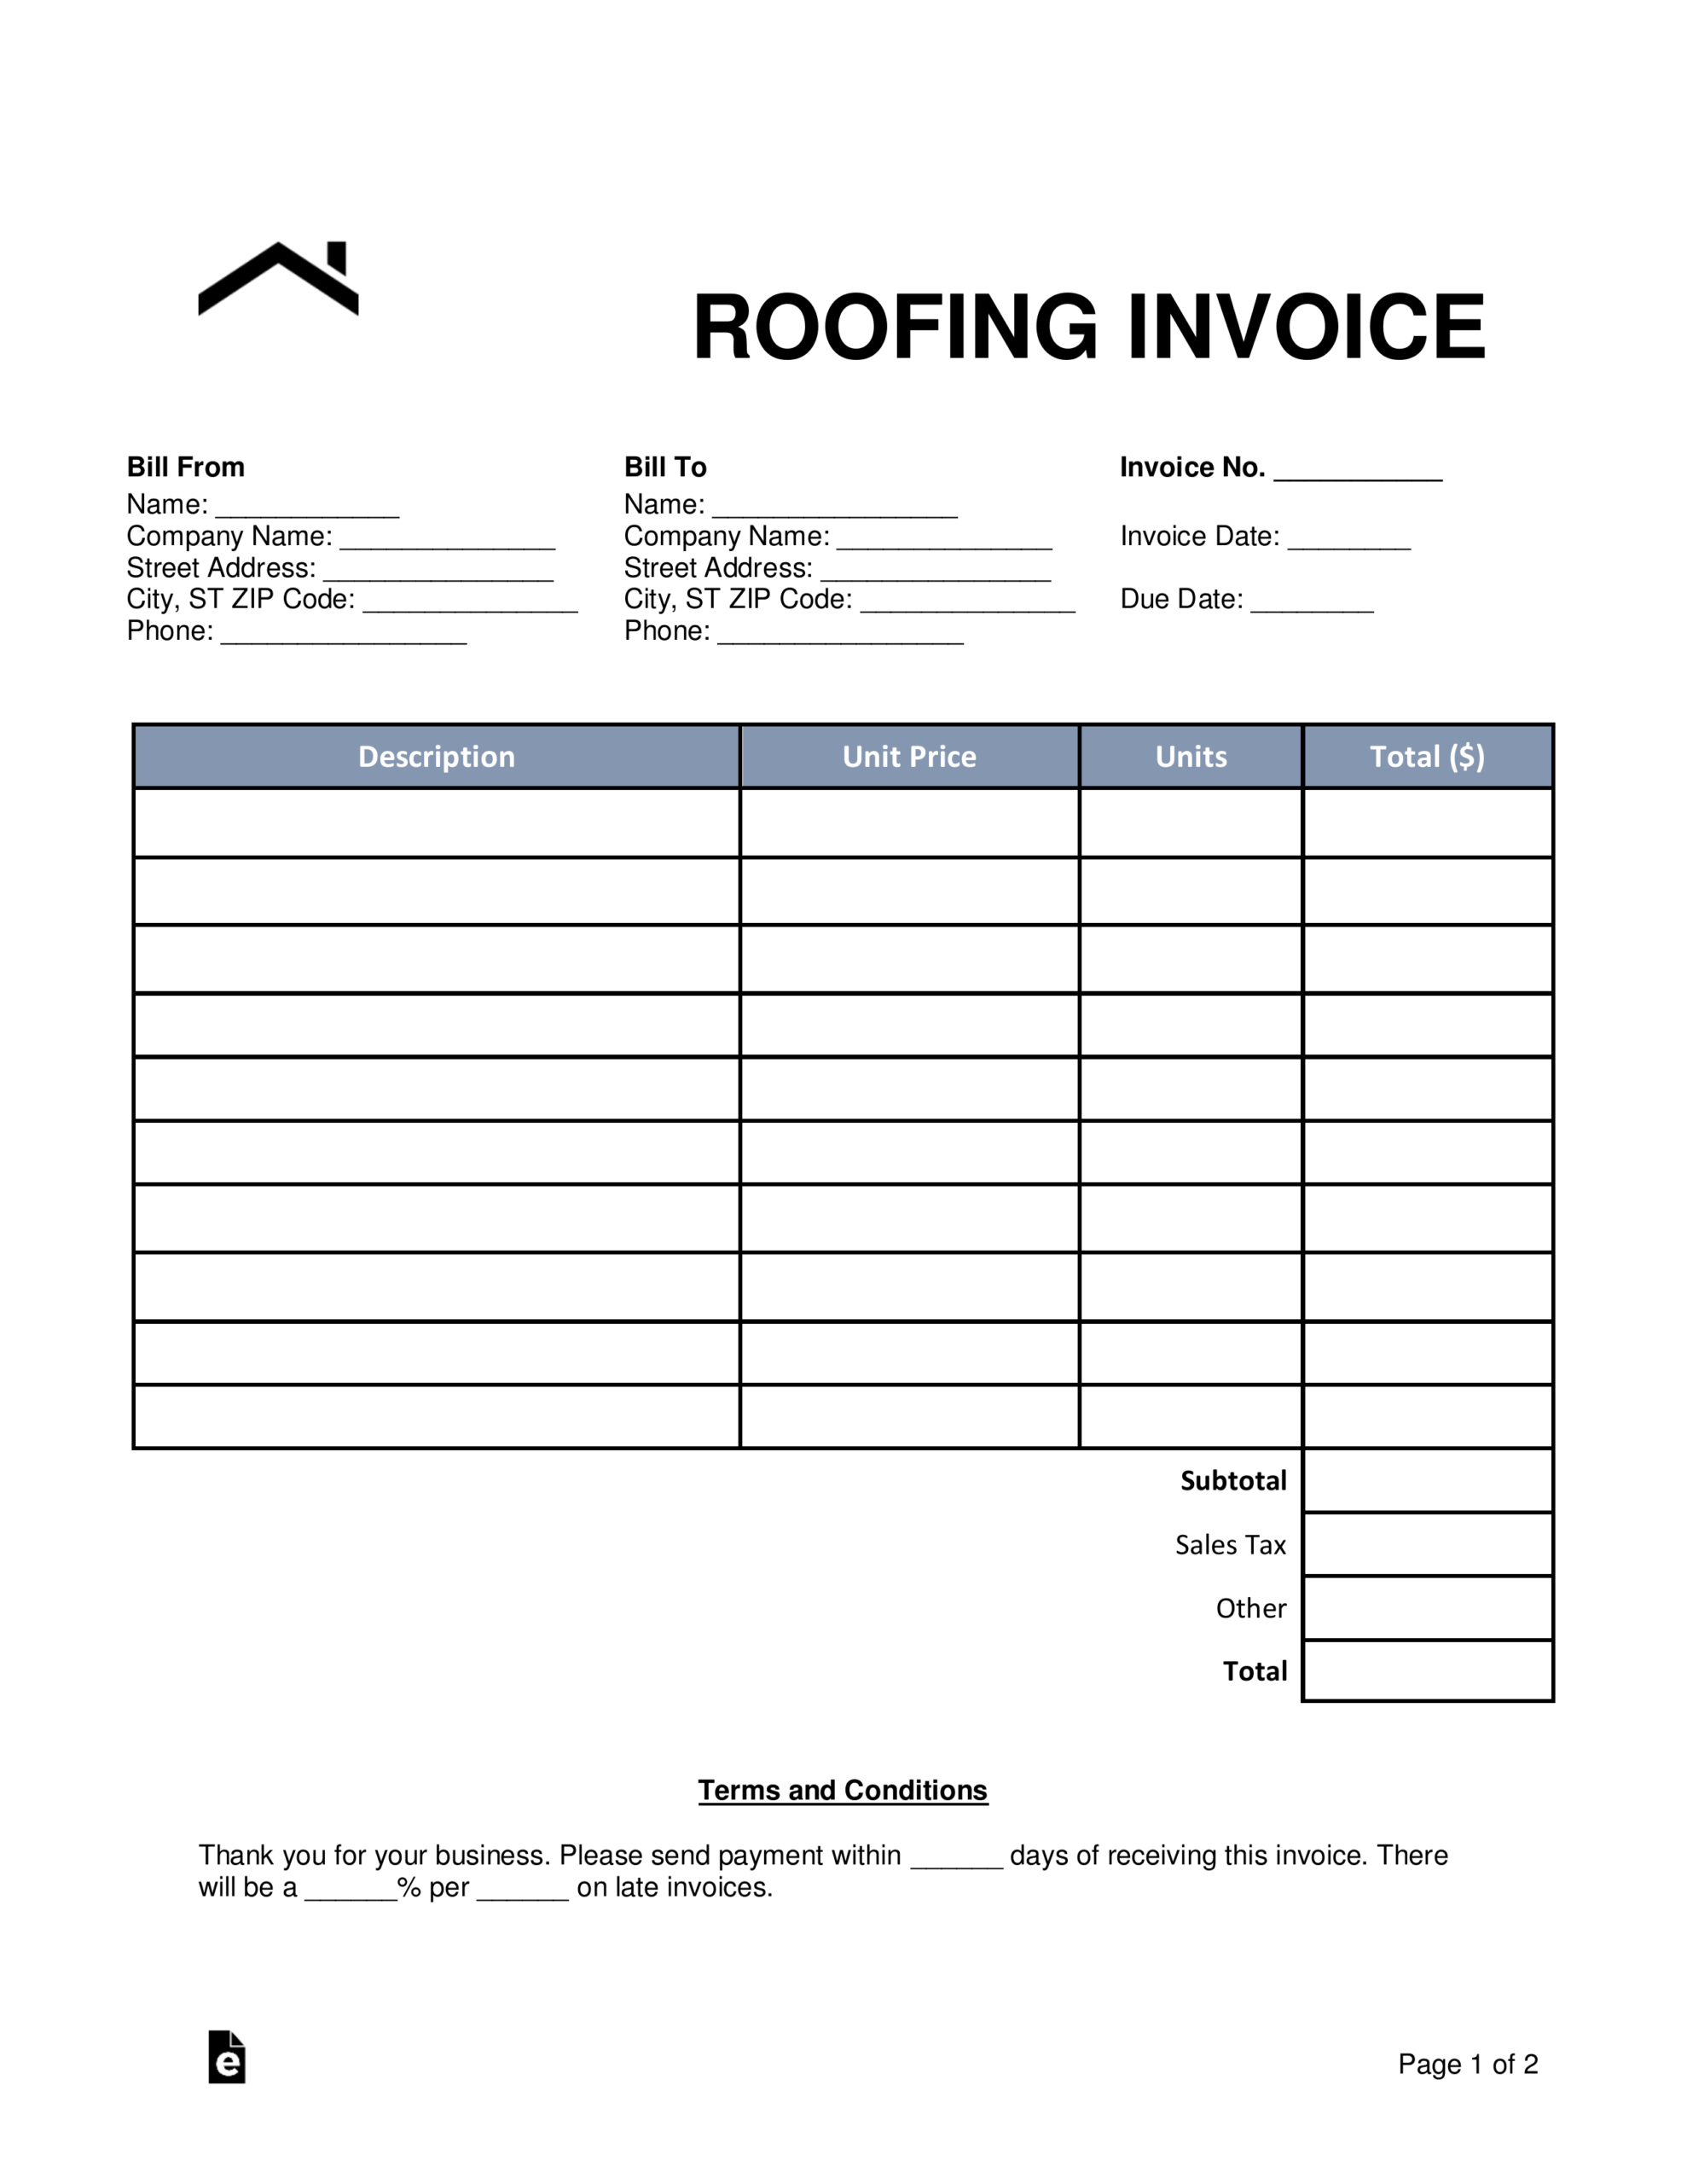 Roofing Invoice Template - Colona.rsd7 With Free Roofing Invoice Template